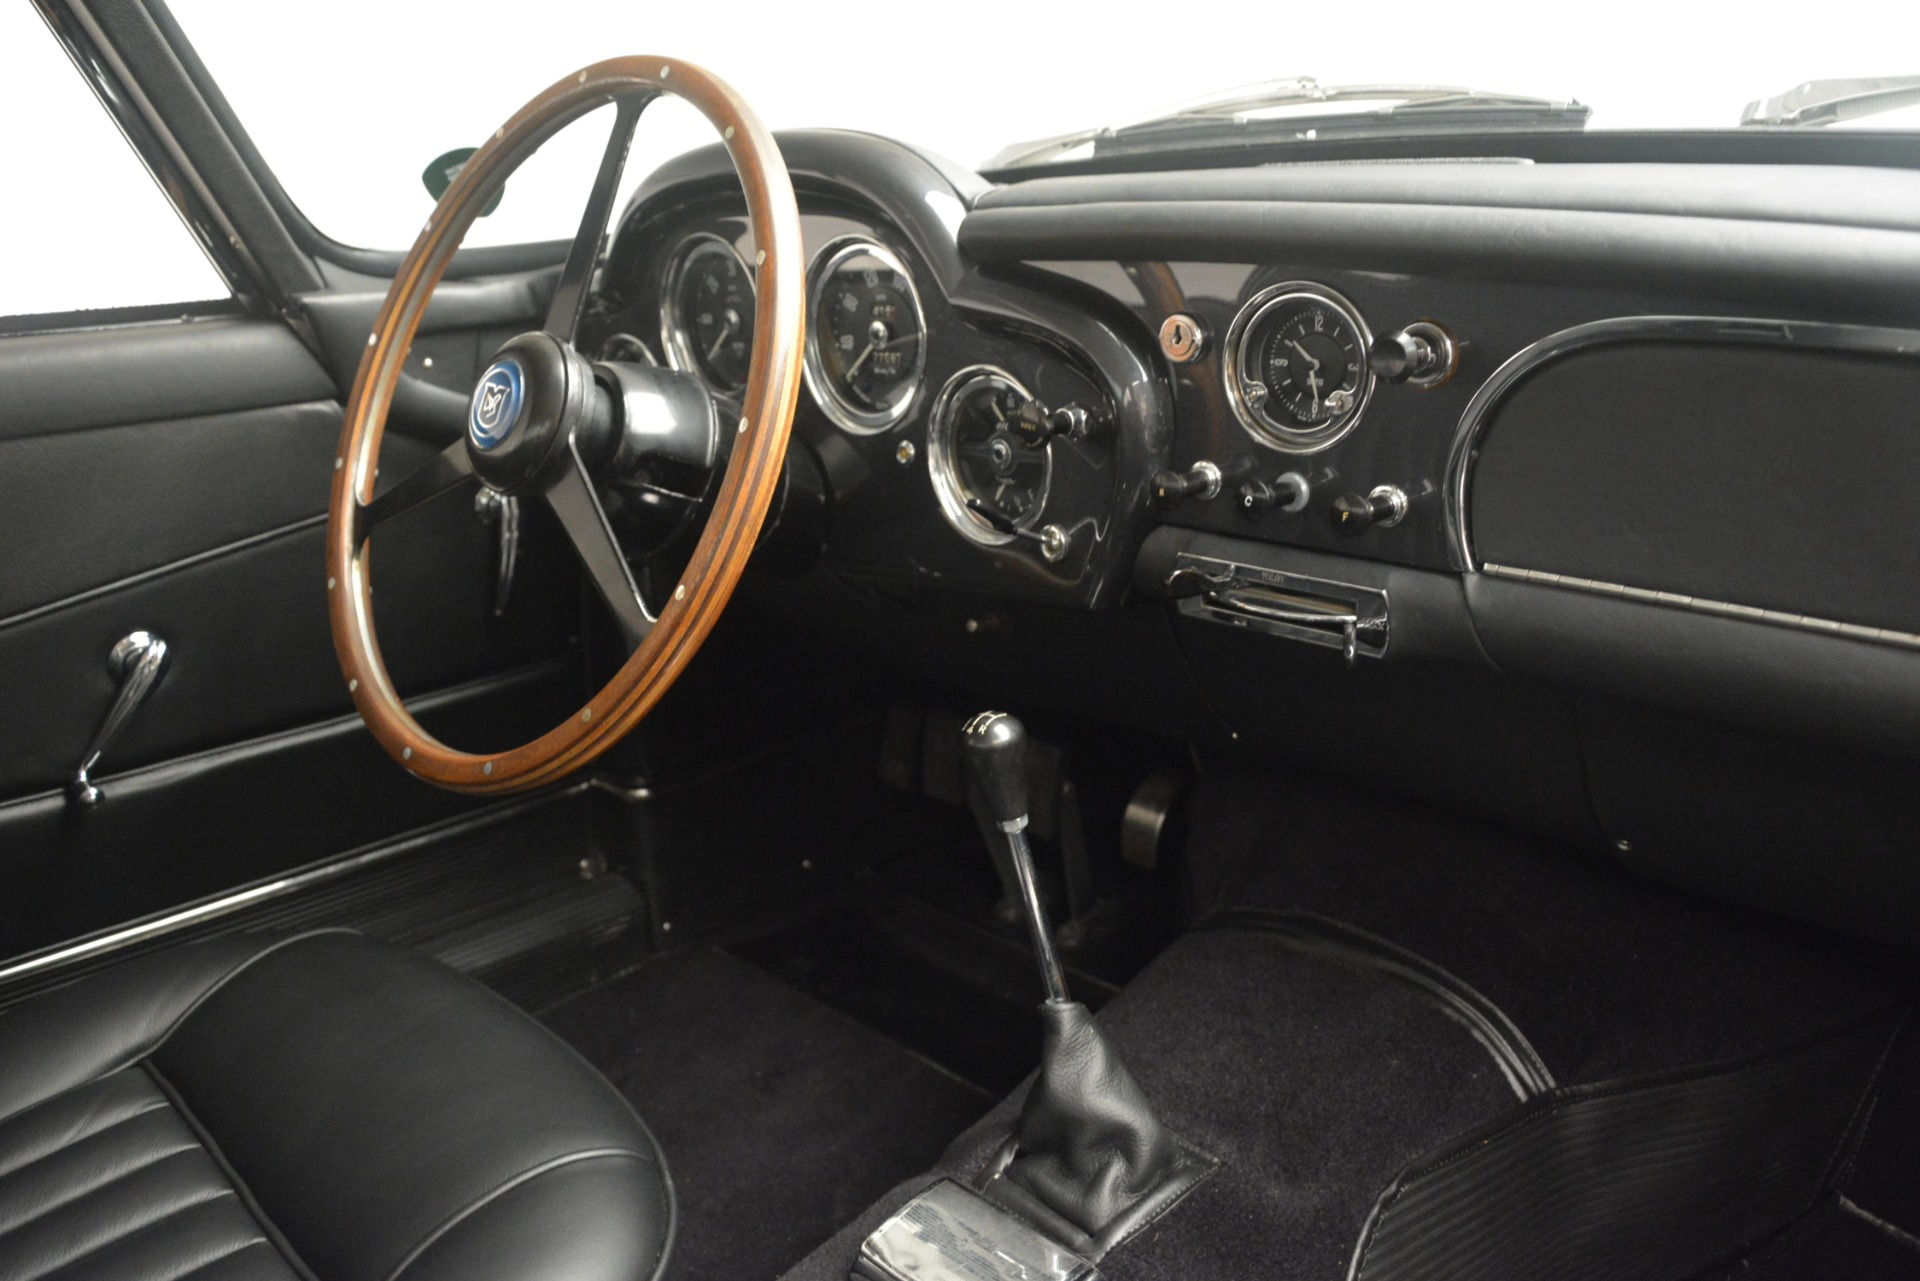 Used 1961 Aston Martin DB4 Series IV Coupe For Sale In Greenwich, CT 3186_p26